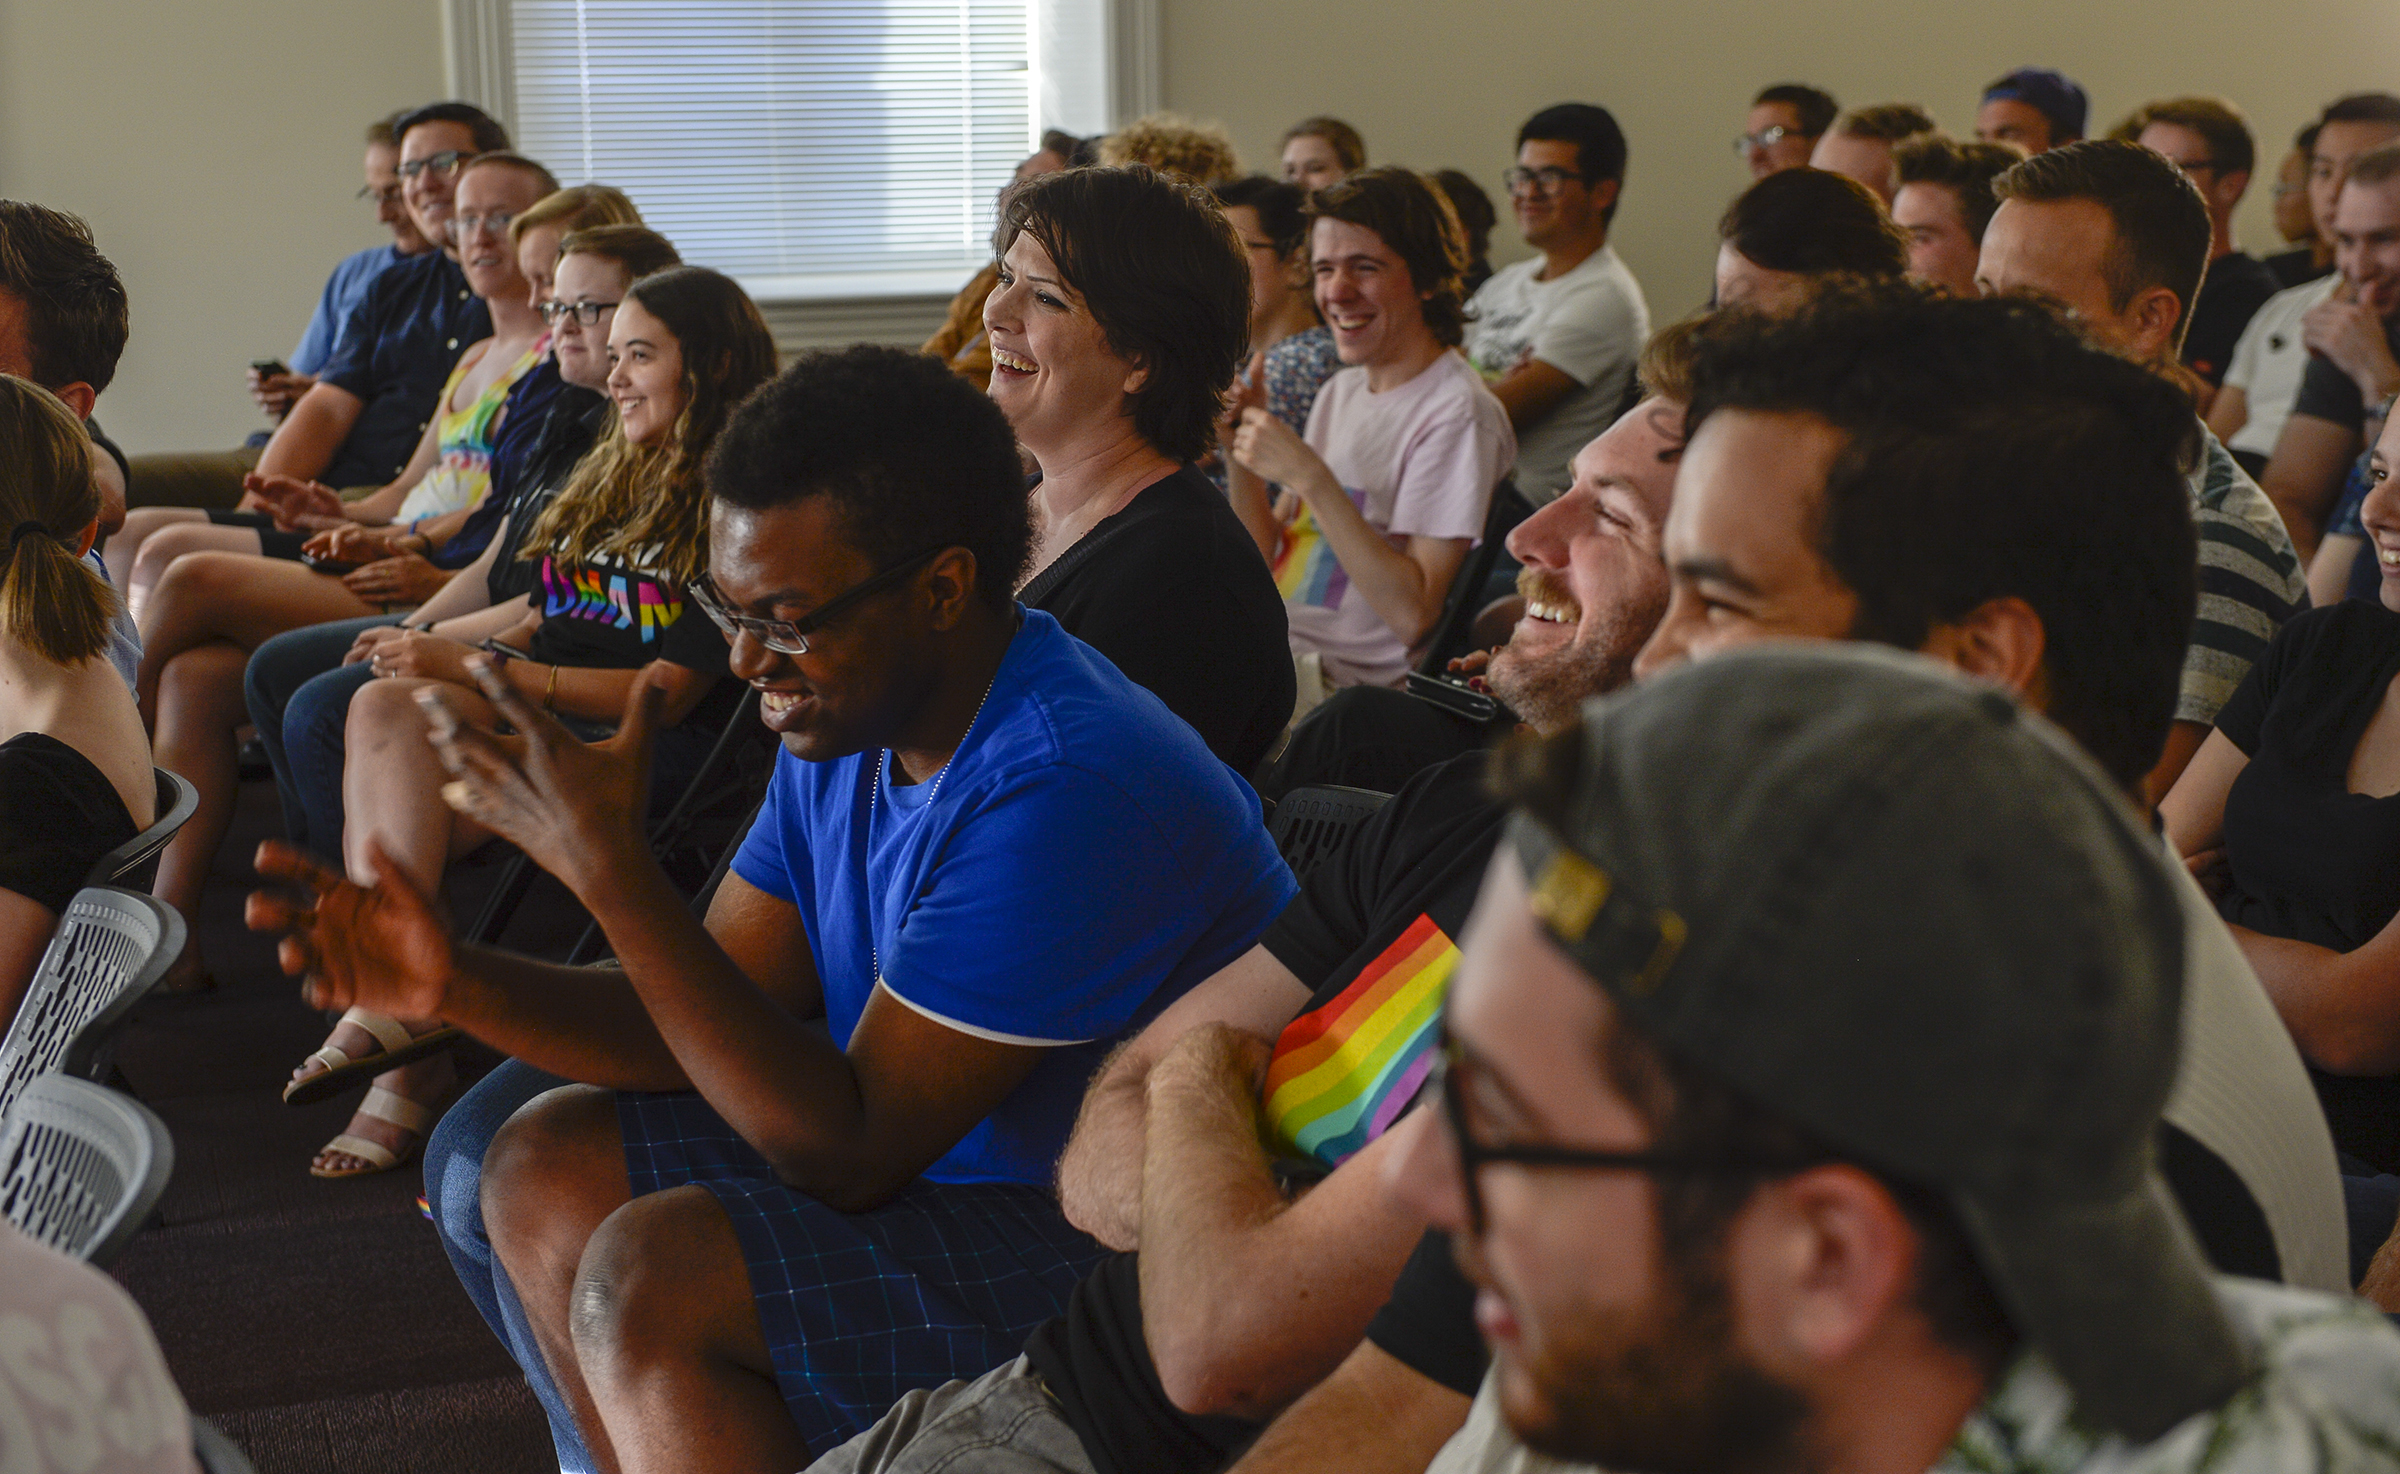 Leah Hogsten  |  The Salt Lake Tribune  LGBT students at Brigham Young University meet at the Provo City Library, June 28, 2018 to hold open, respectful discussions on the topic of same-gender attraction. USGA is an organization for LGBT Brigham Young University students and their allies to discuss issues relating to homosexuality and the LDS Church.